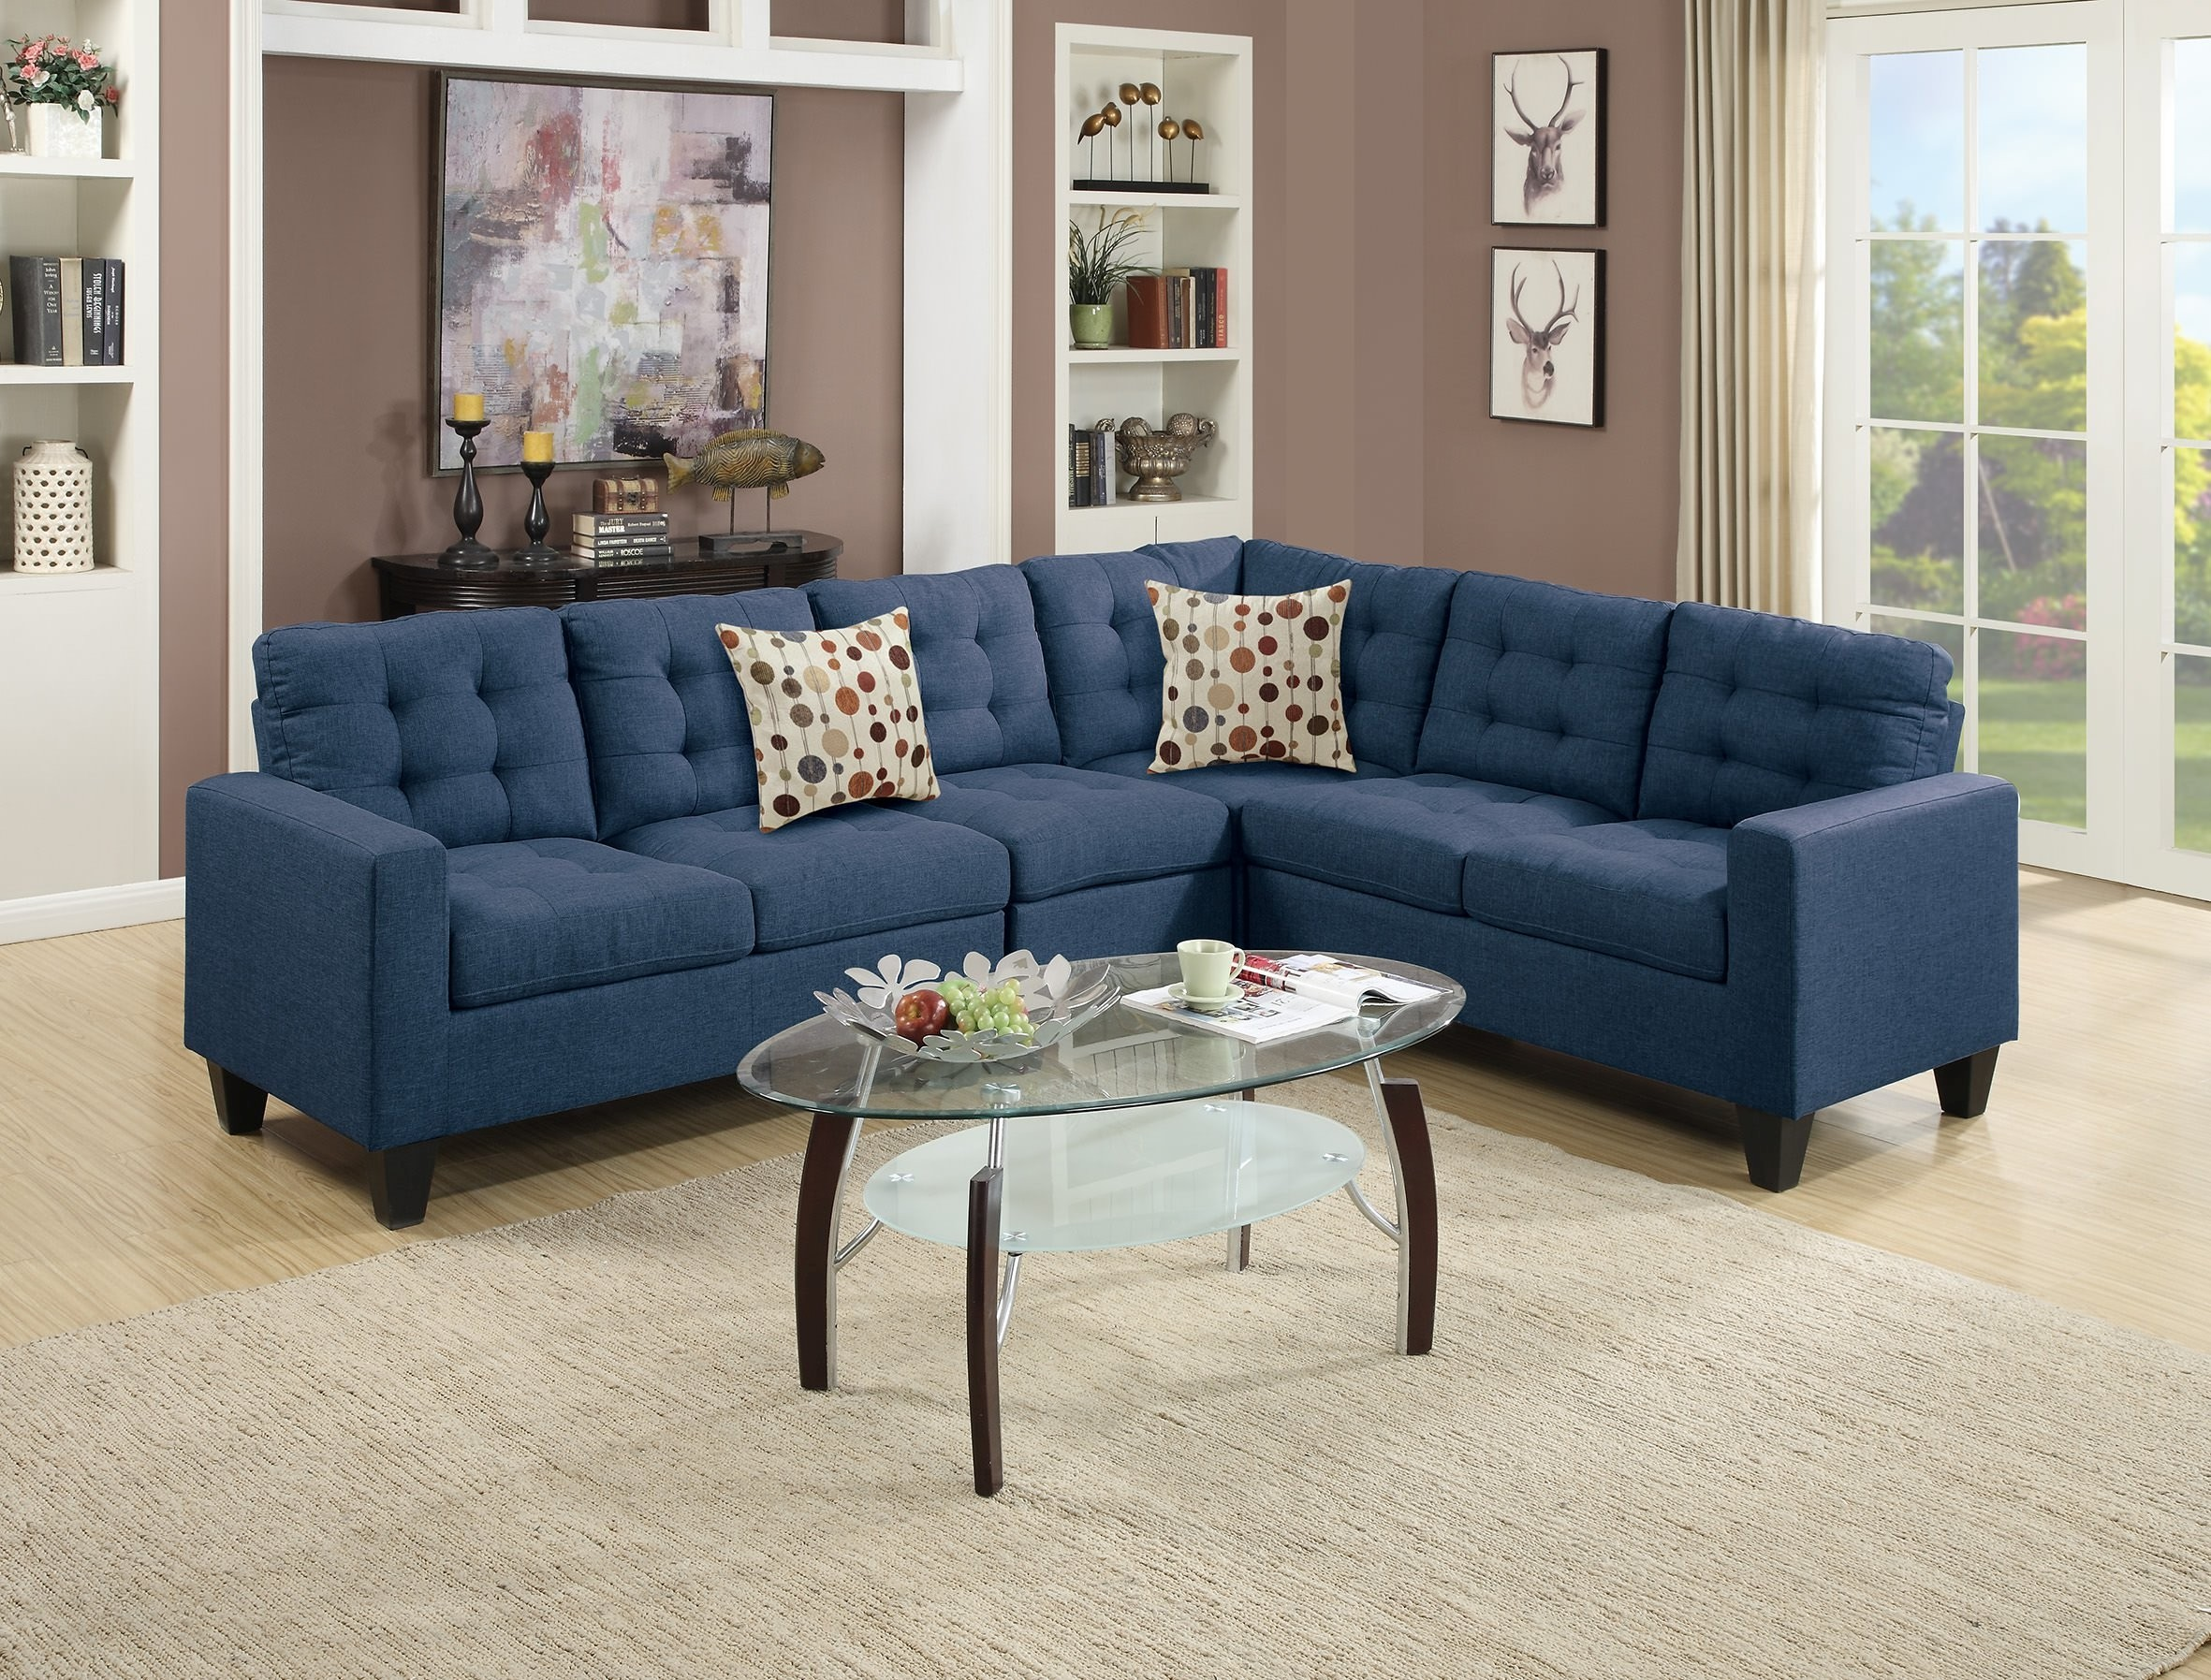 Sofa Set Sale Sensational sofa Design Couches Blue Couches for Sale Grey sofa Set White Wallpaper